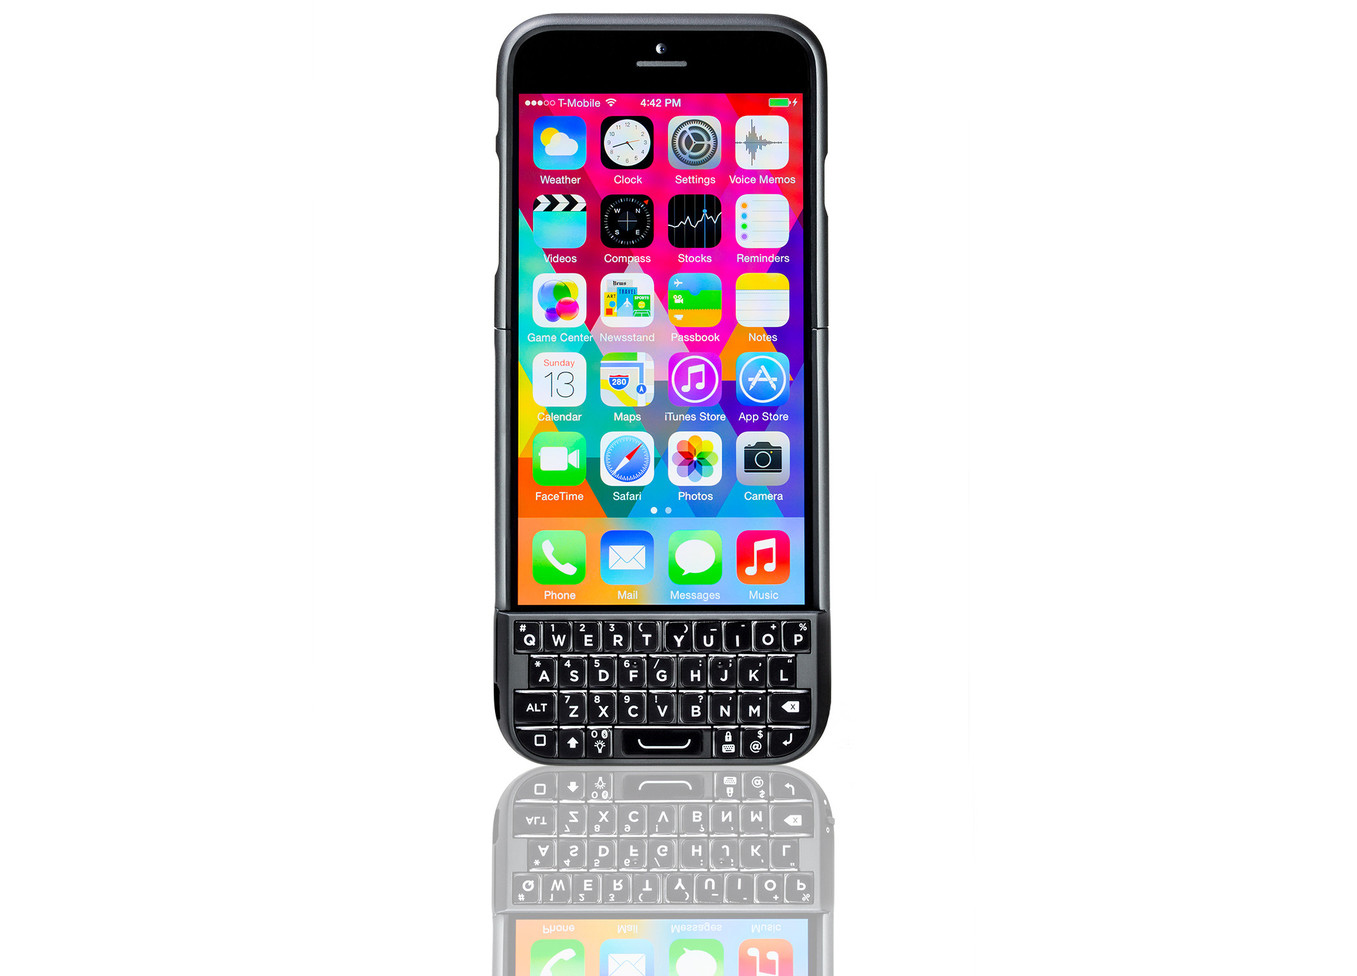 Makers Of Slip-On iPhone Keyboard Sued By BlackBerry Release New Model